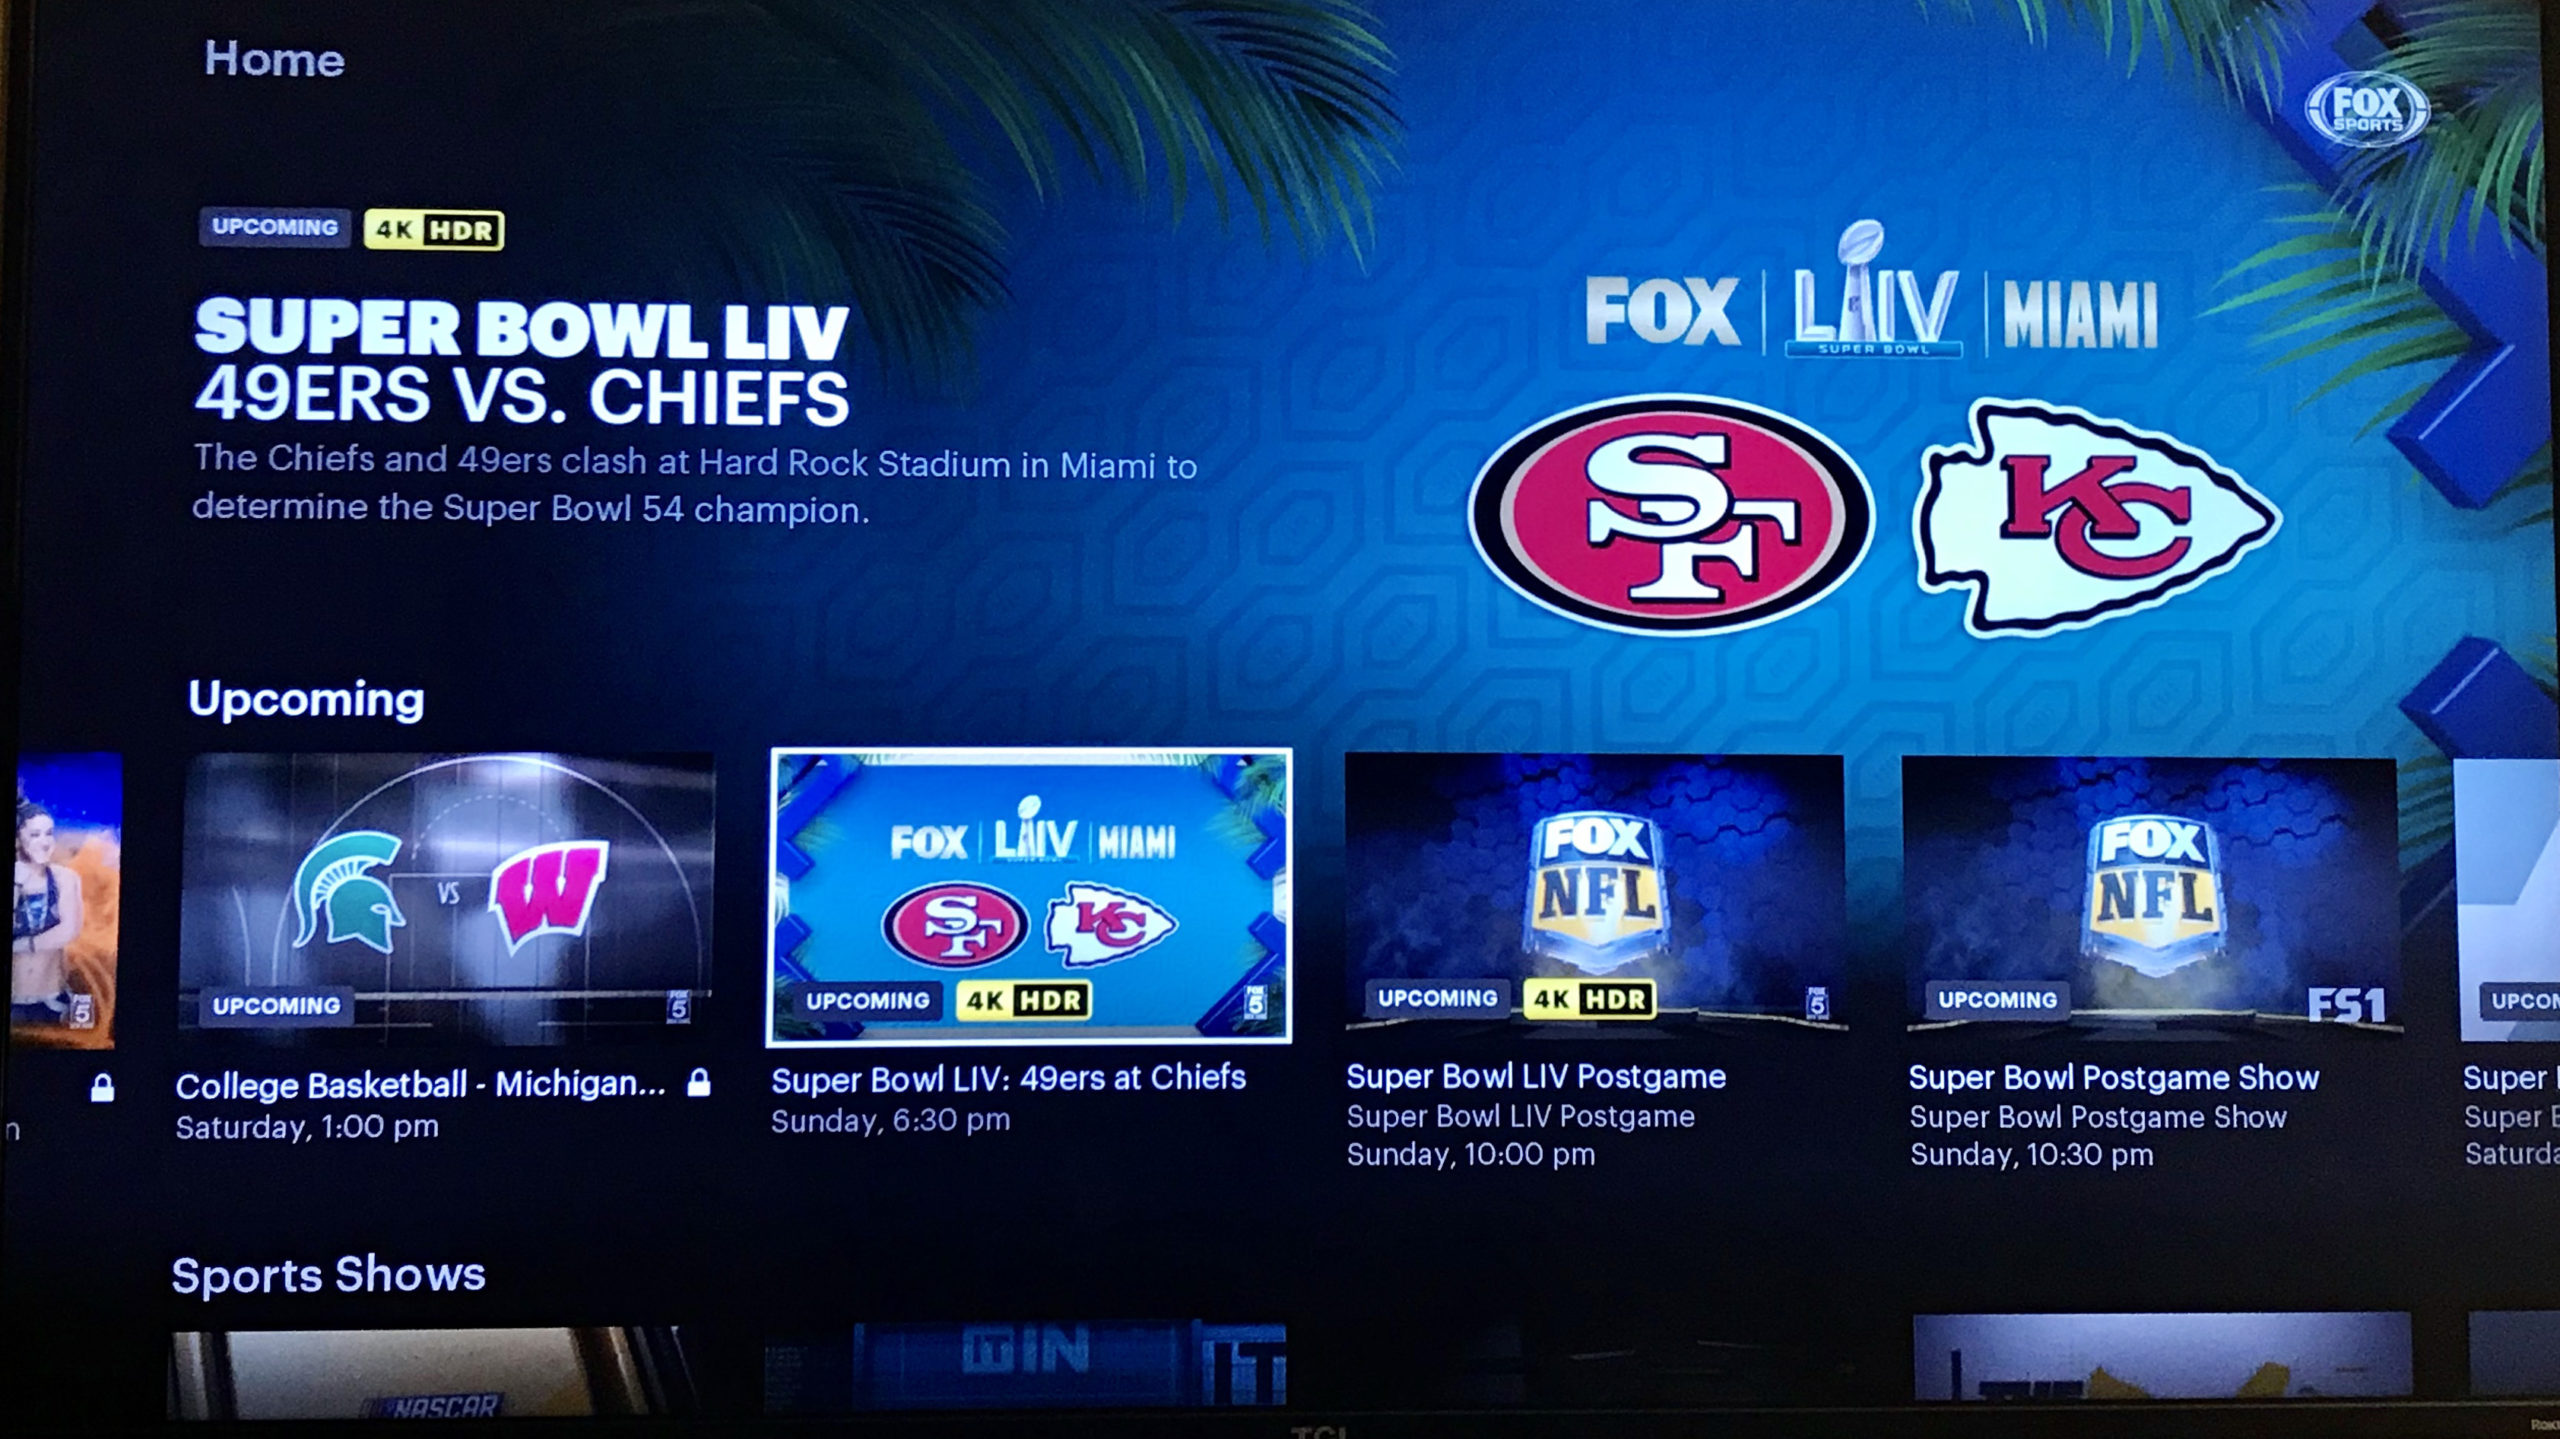 Fox Channels Pulled From Roku In Carriage Flap Before Super Bowl LIV